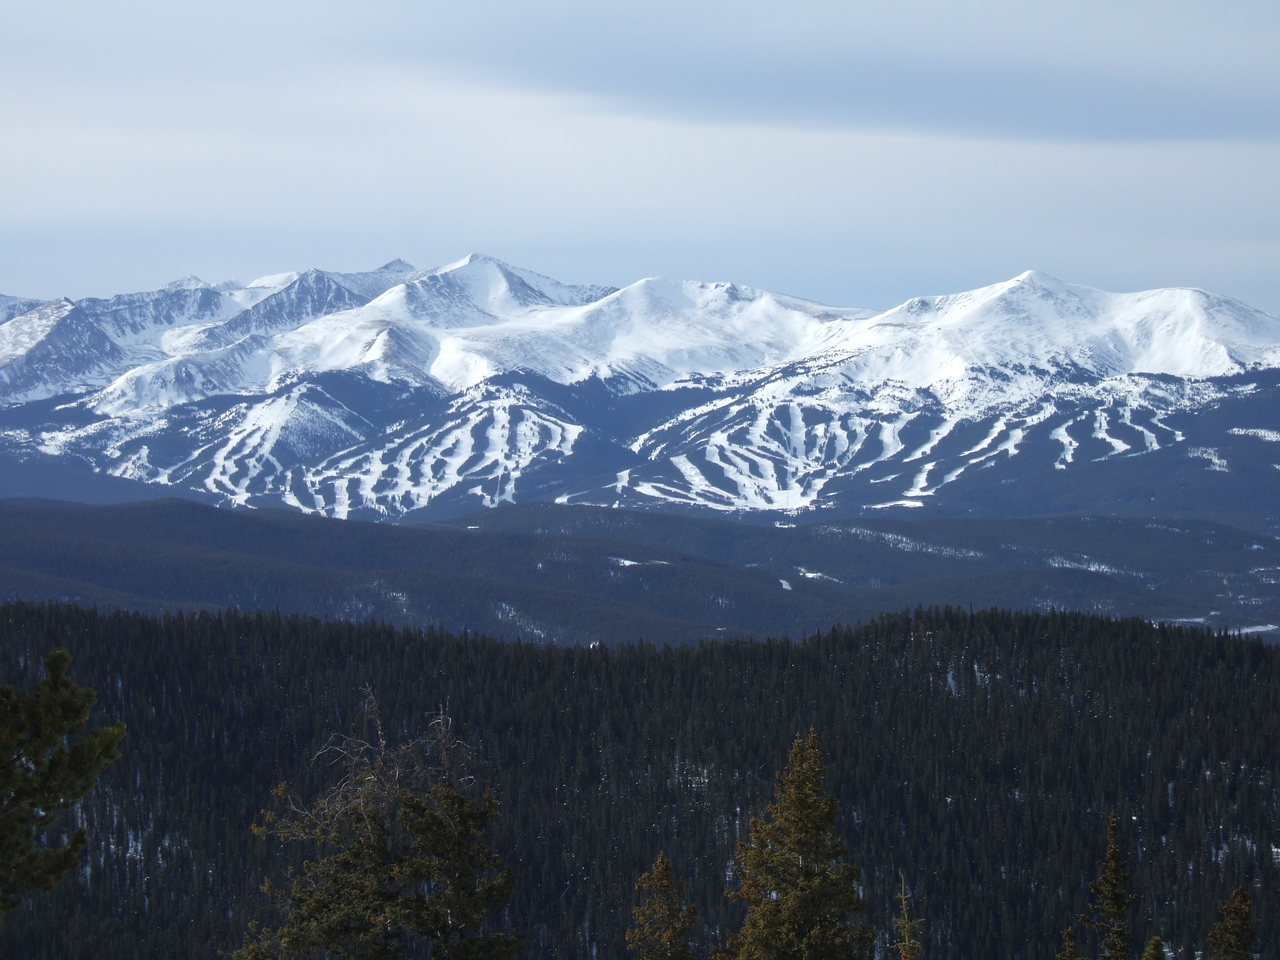 A look at Breckenridge from Keystone